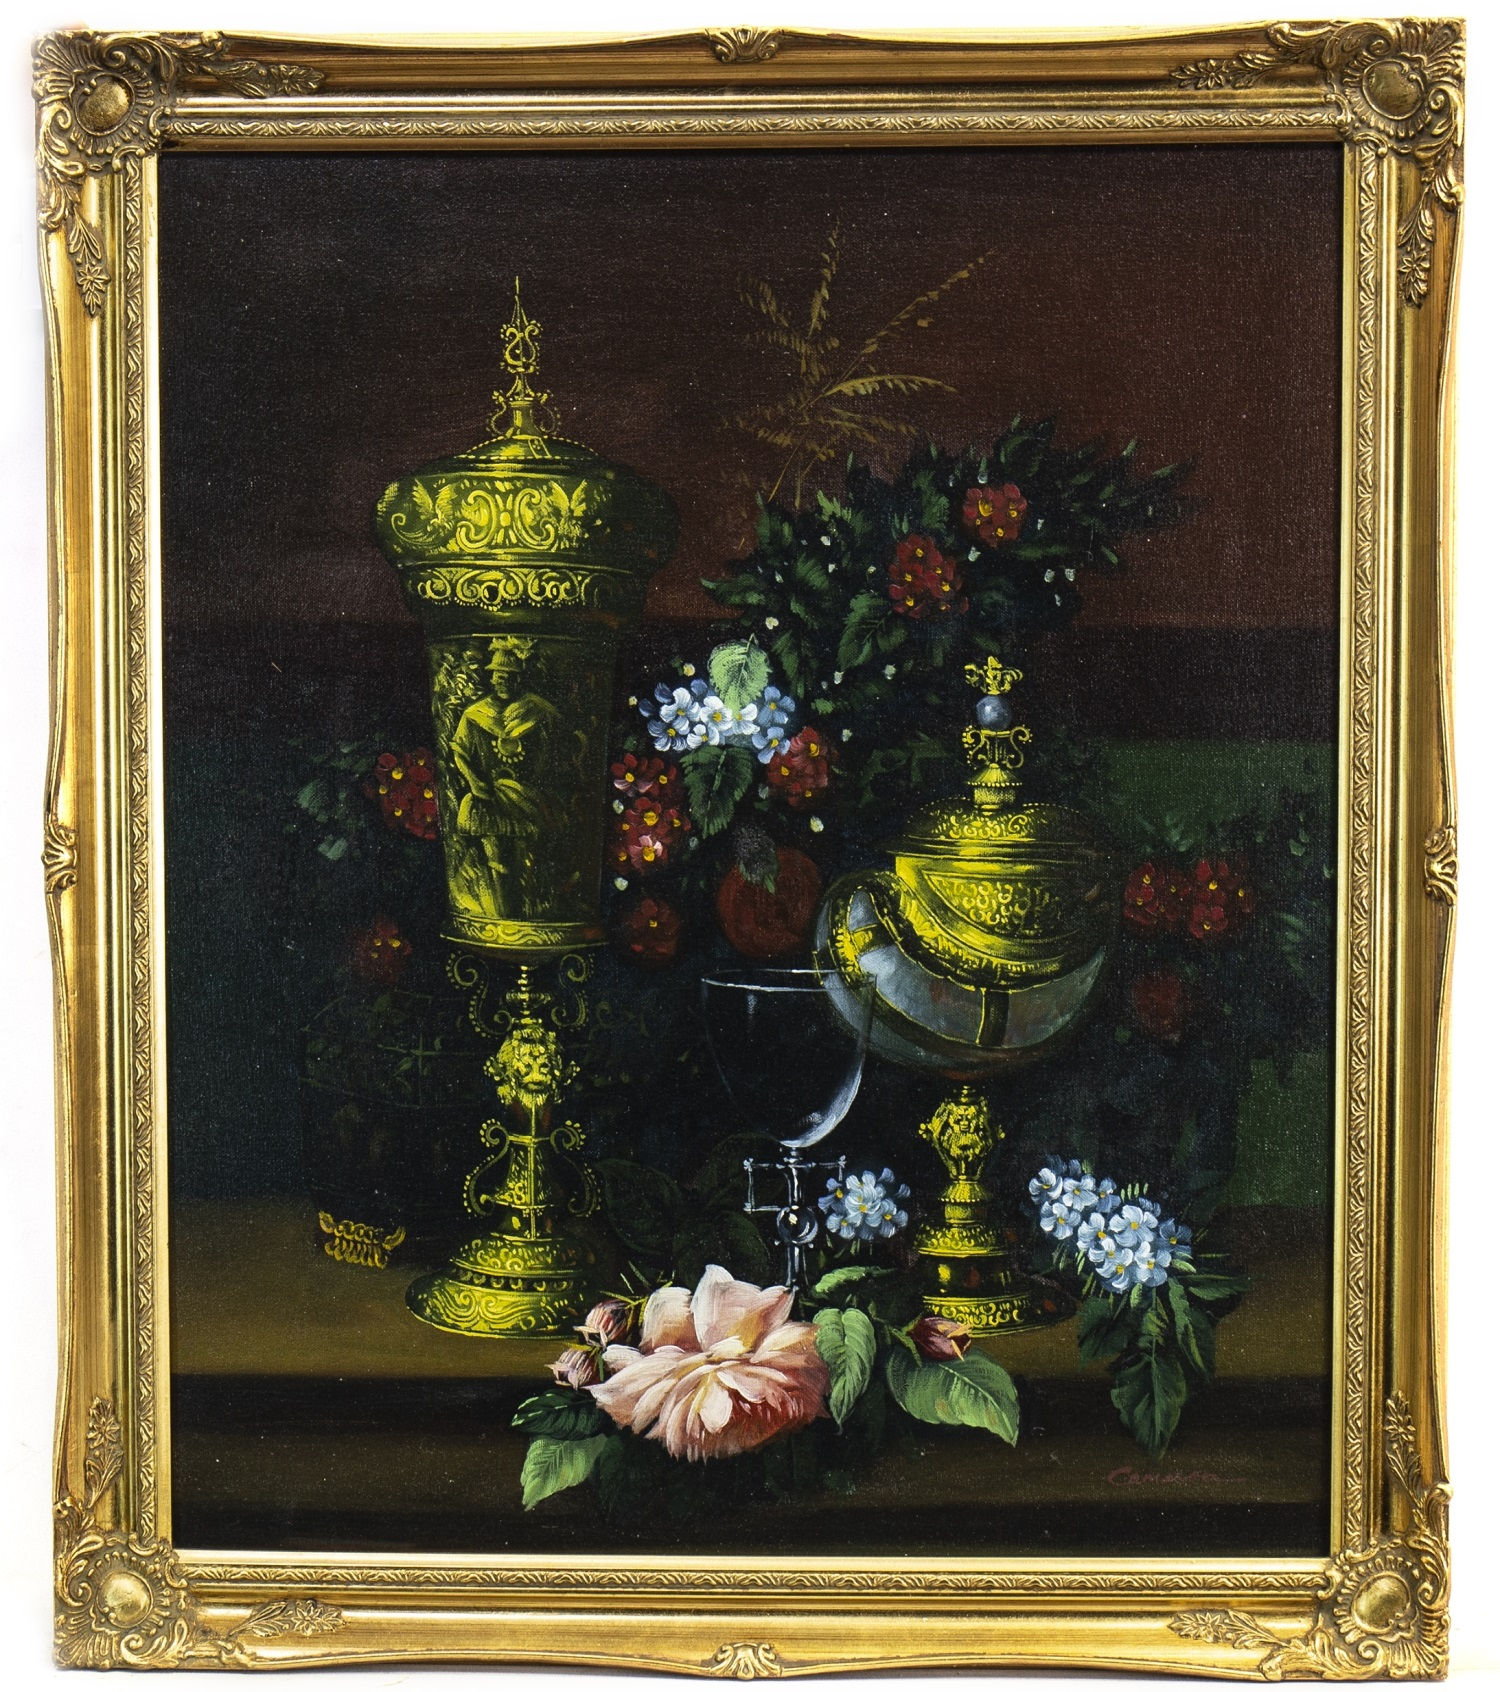 Lot 629 - STILL LIFE WITH FRUIT AND FLOWERS, AN OIL